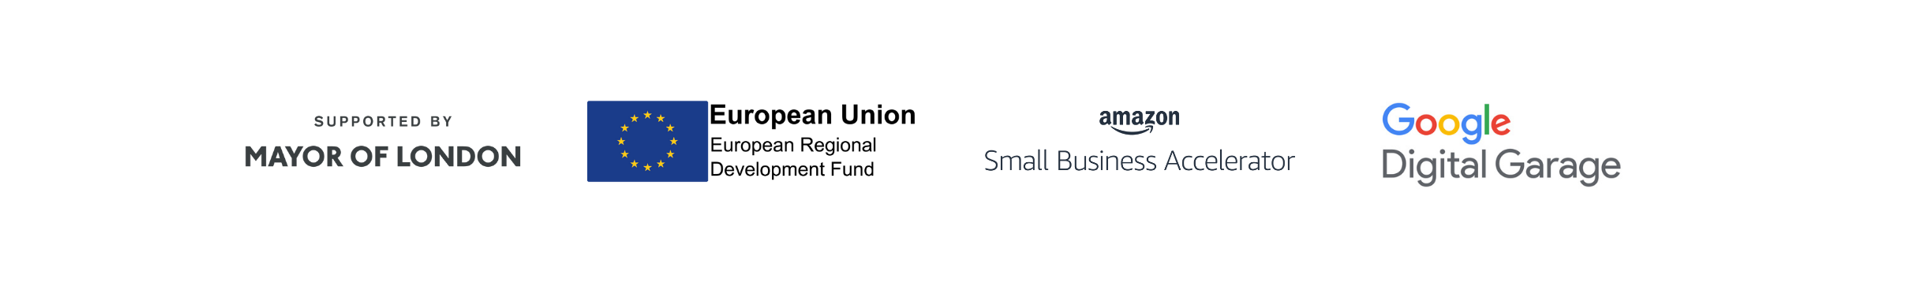 London Business Week is supported by the Mayor of London, European Regional Development Fund, Amazon and Google.